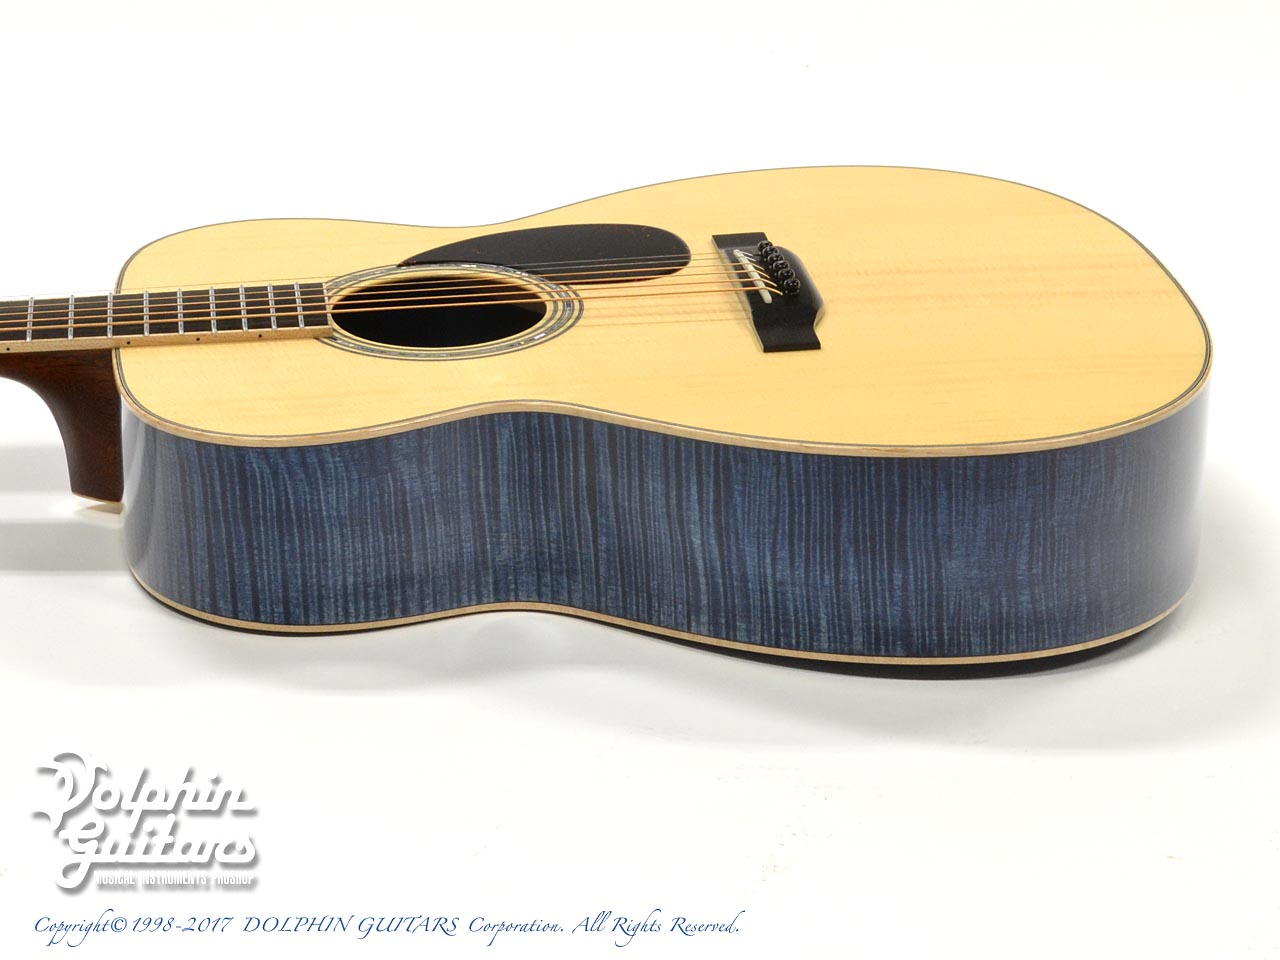 SWITCH: SCOM-3 E-FM (Engelmann Spruce & Flame Maple) (Ai Gradation) (3)